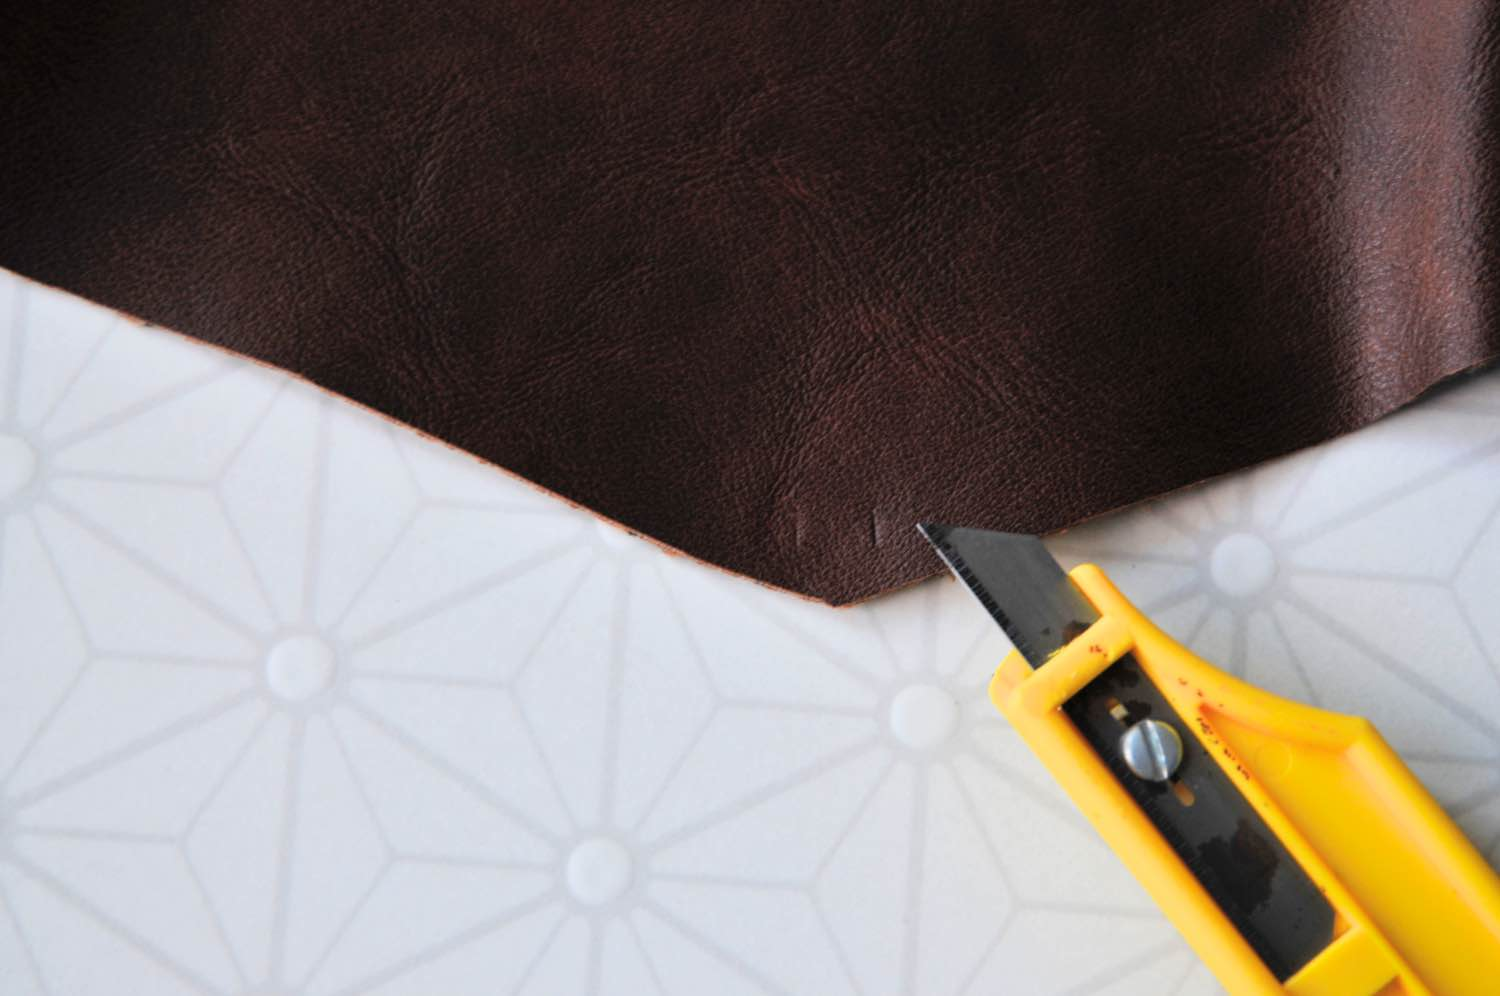 how to attach the clasp to the travel pouch